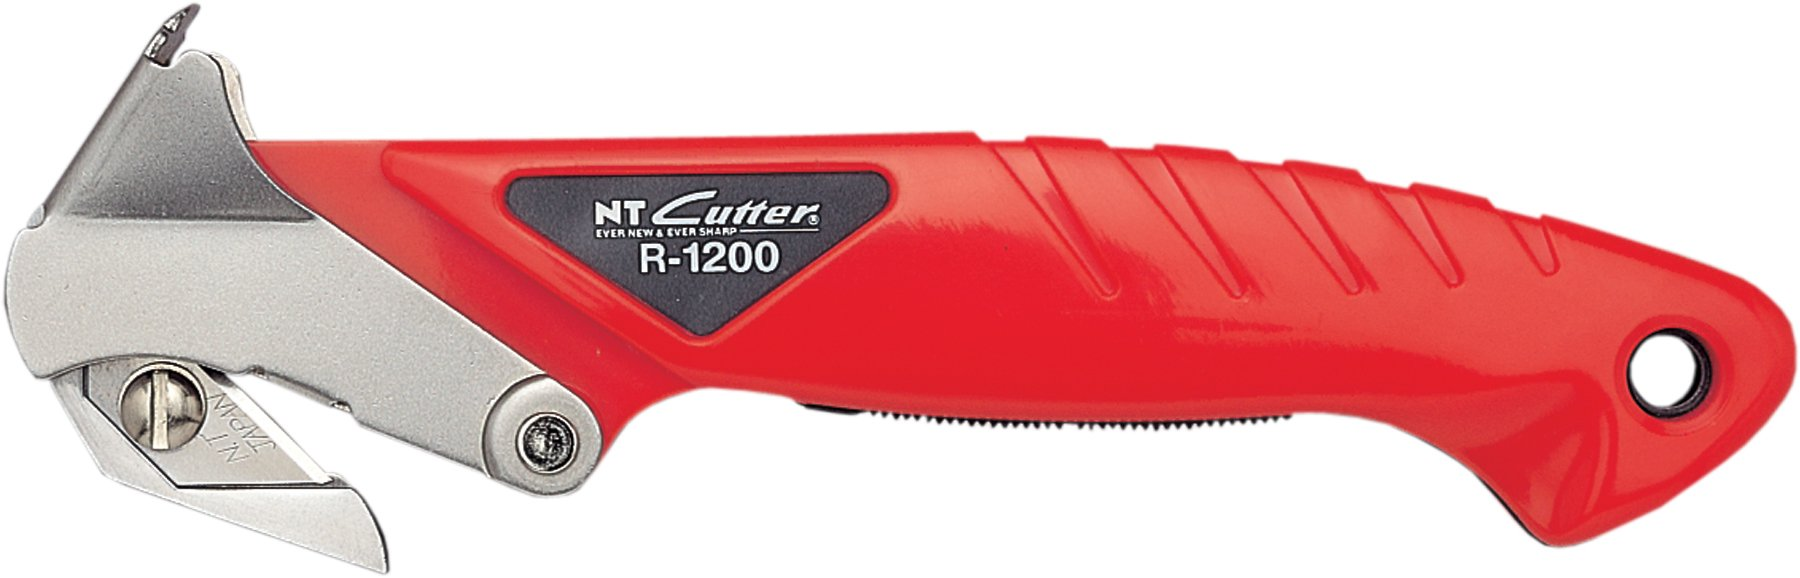 NT Cutter Safety Carton Opener with Staple Remover, 1 Opener (R-1200P)